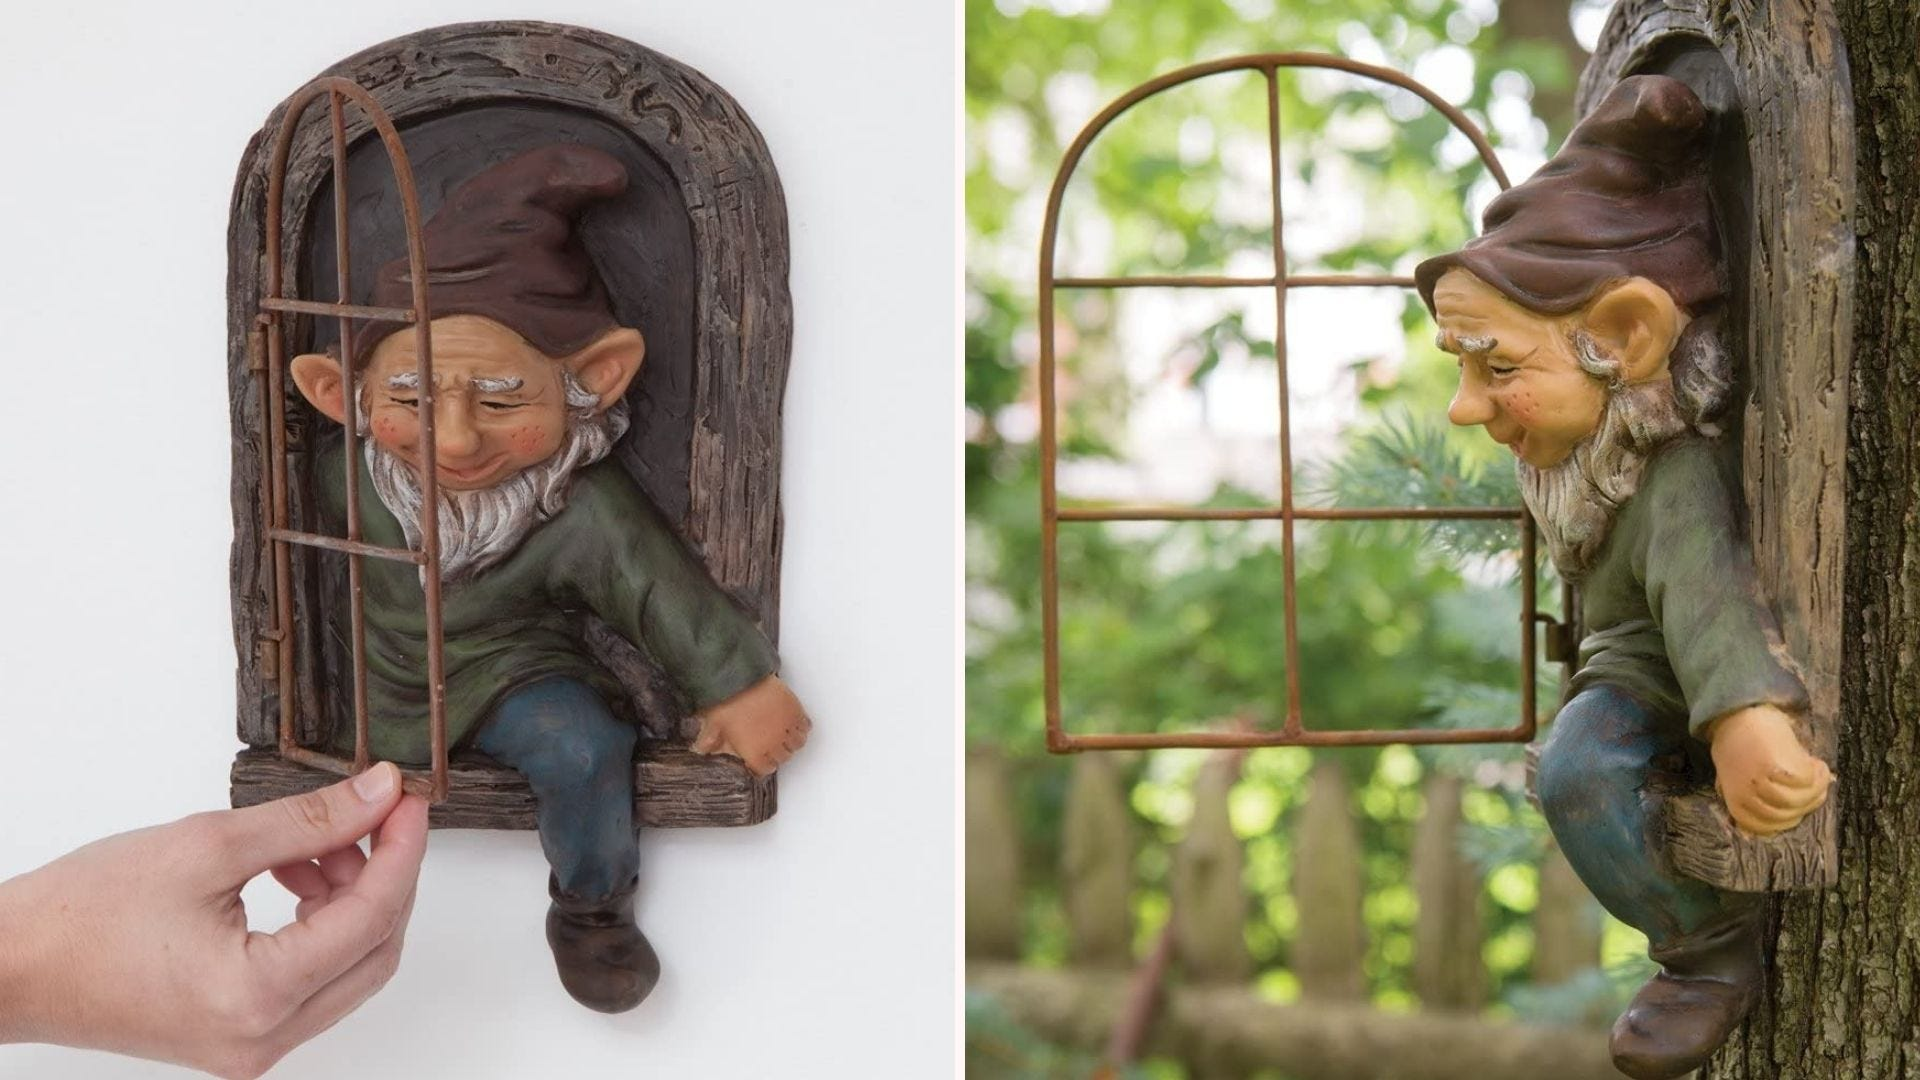 Garden gnome exiting a window statue that's fixed to the trunk of a tree